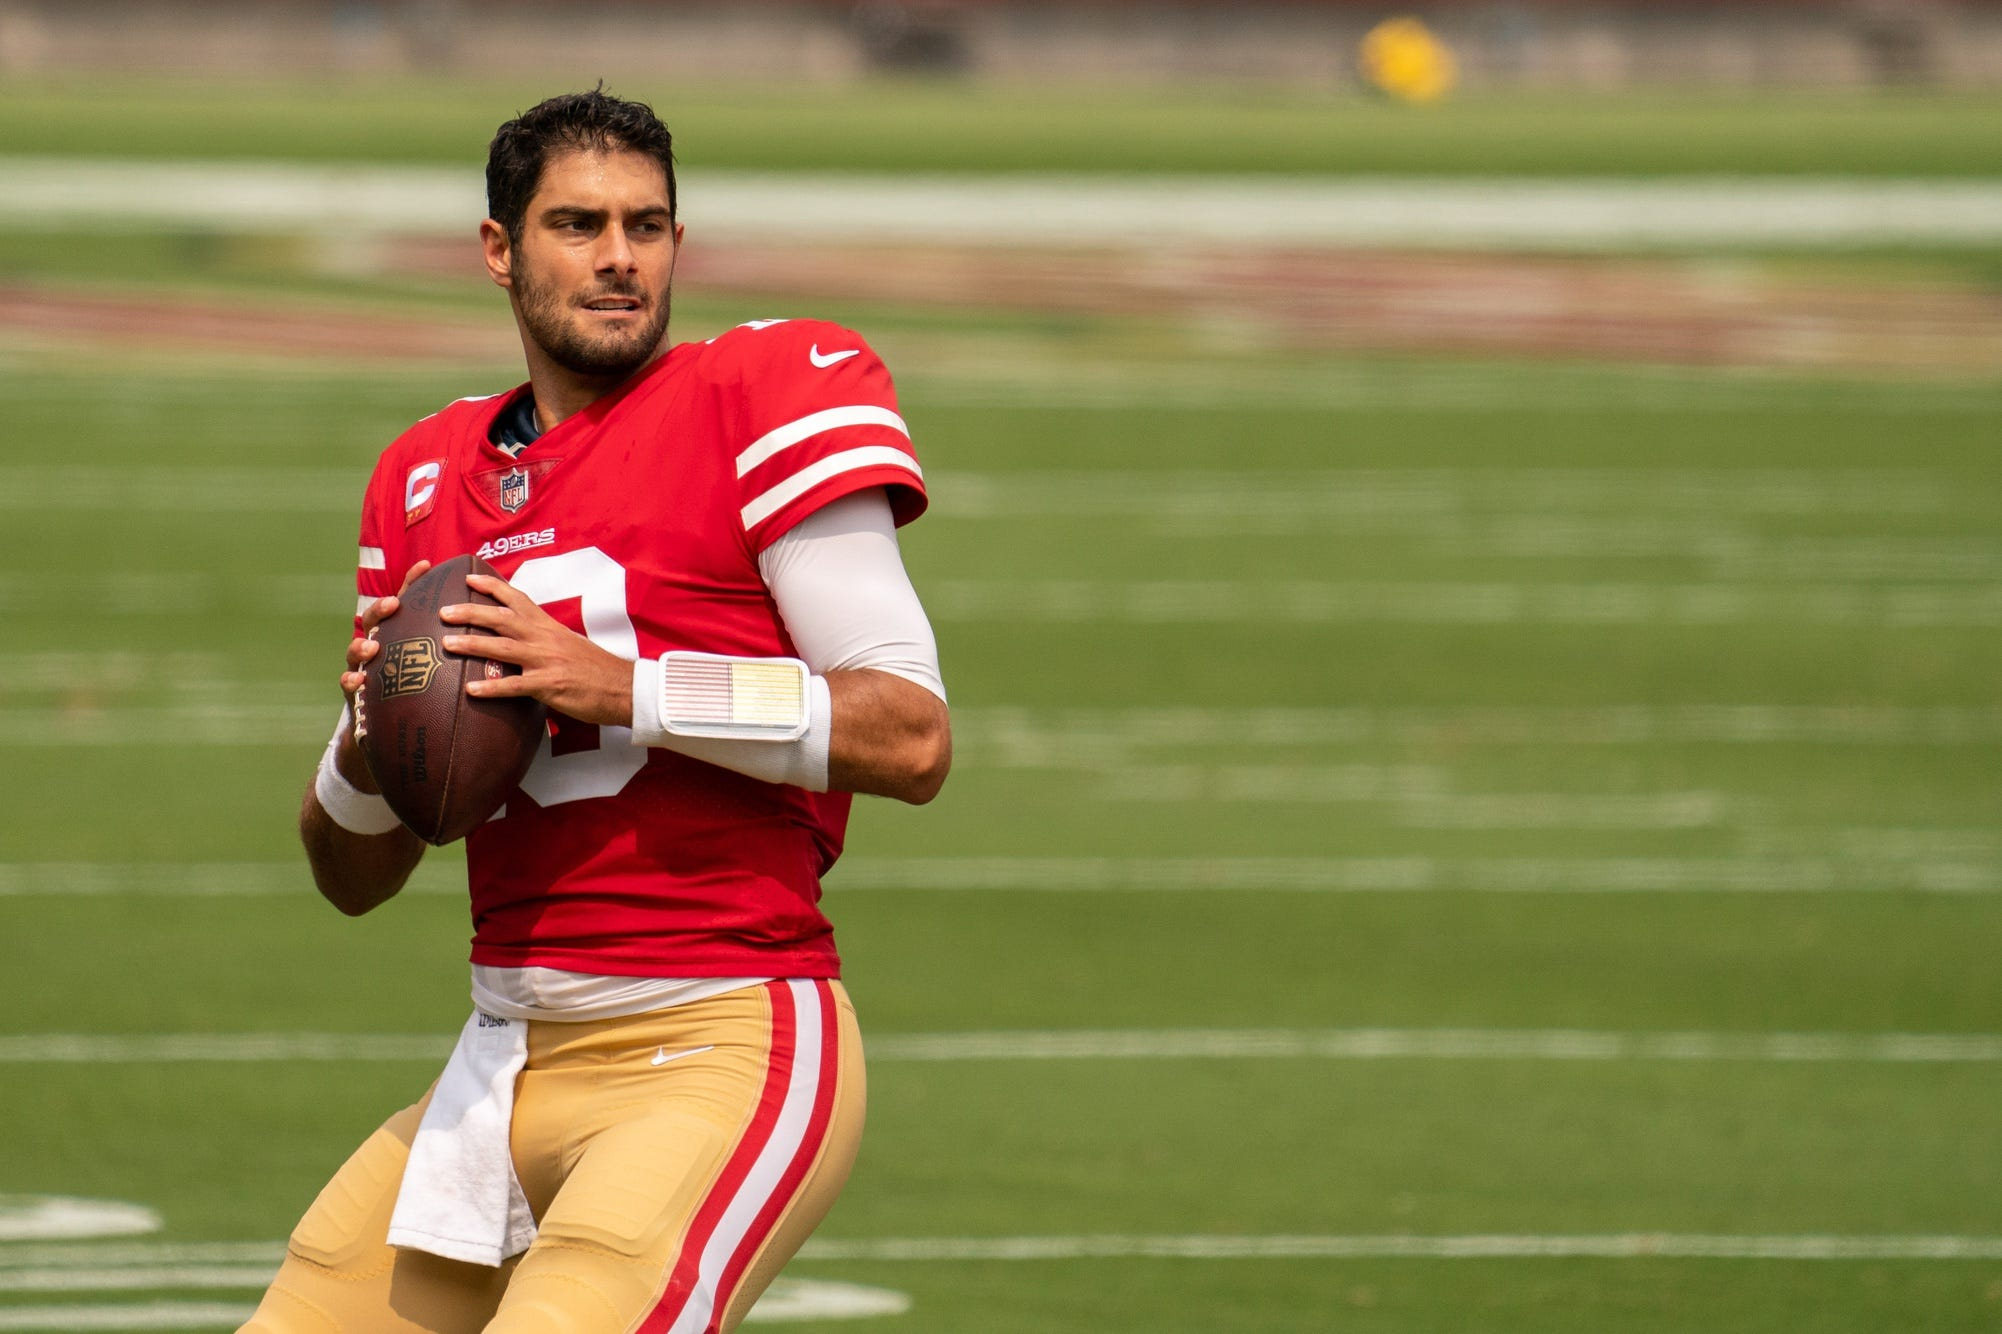 Laird: Making a case for the Jimmy Garoppolo, Bill Belichick reunion